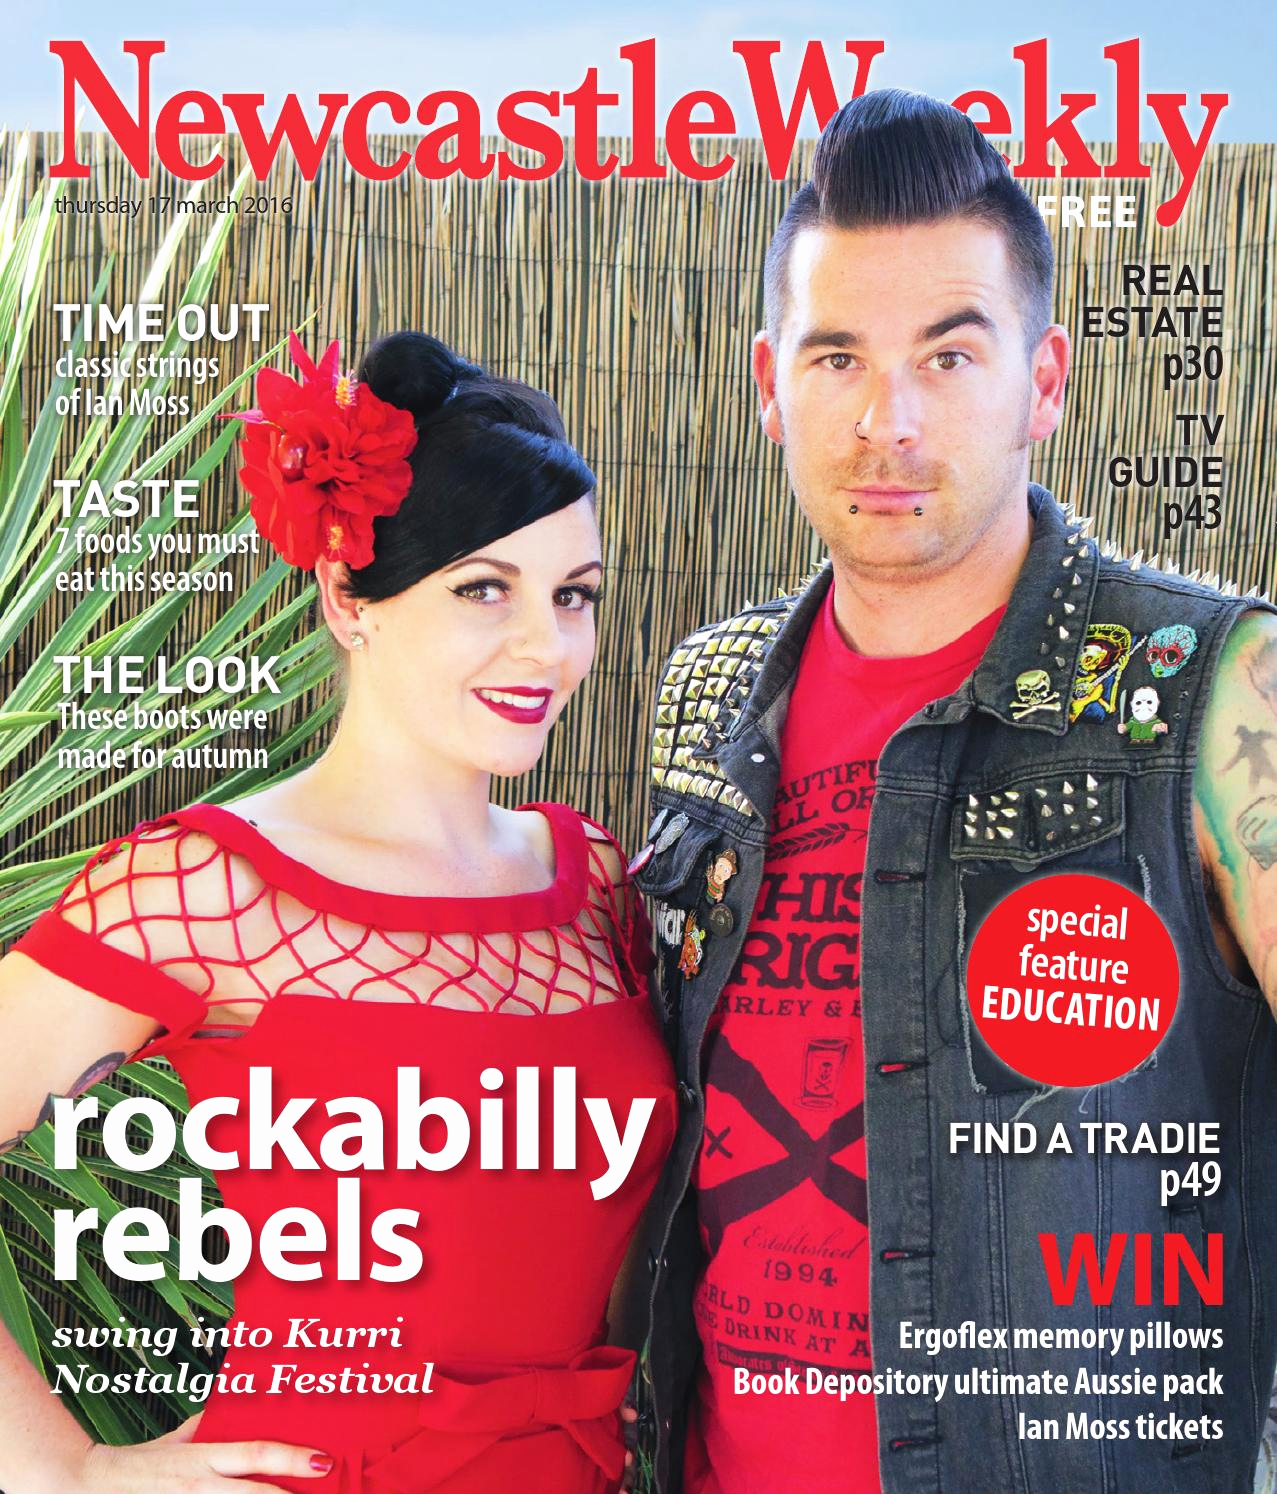 Fitness Hocker Aldi Einzigartig 17 March 2016 Newcastle Weekly Magazine by Newcastle Weekly